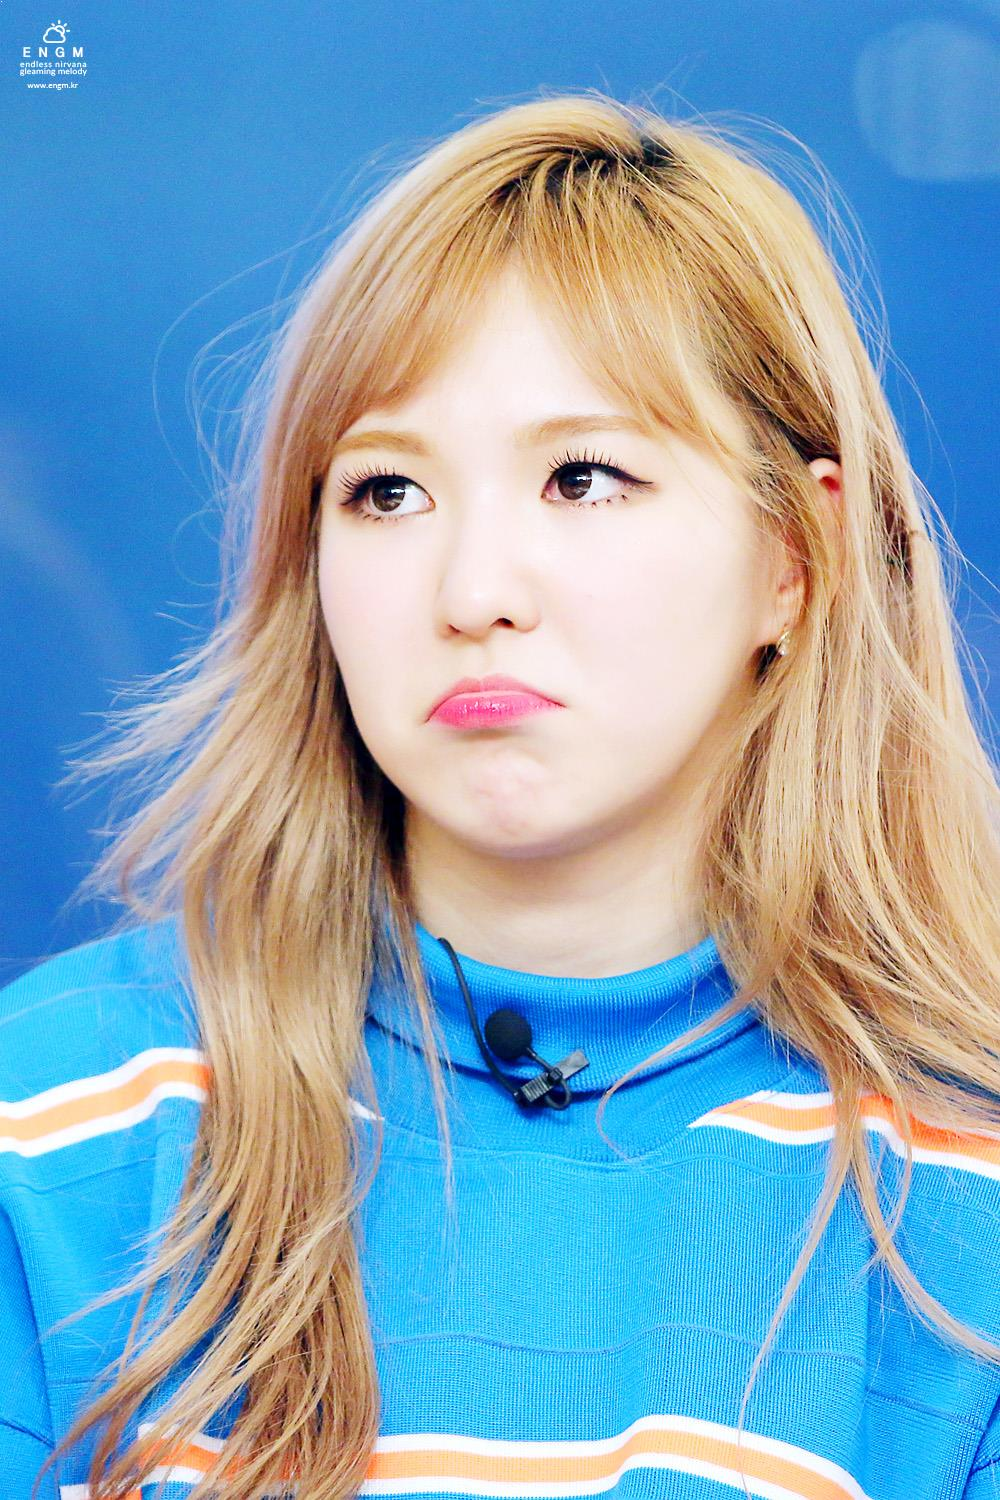 Red Velvet Wendy, Red Velvet Wendy Profile, Red Velvet Wendy Pout, KPop Idol Pout